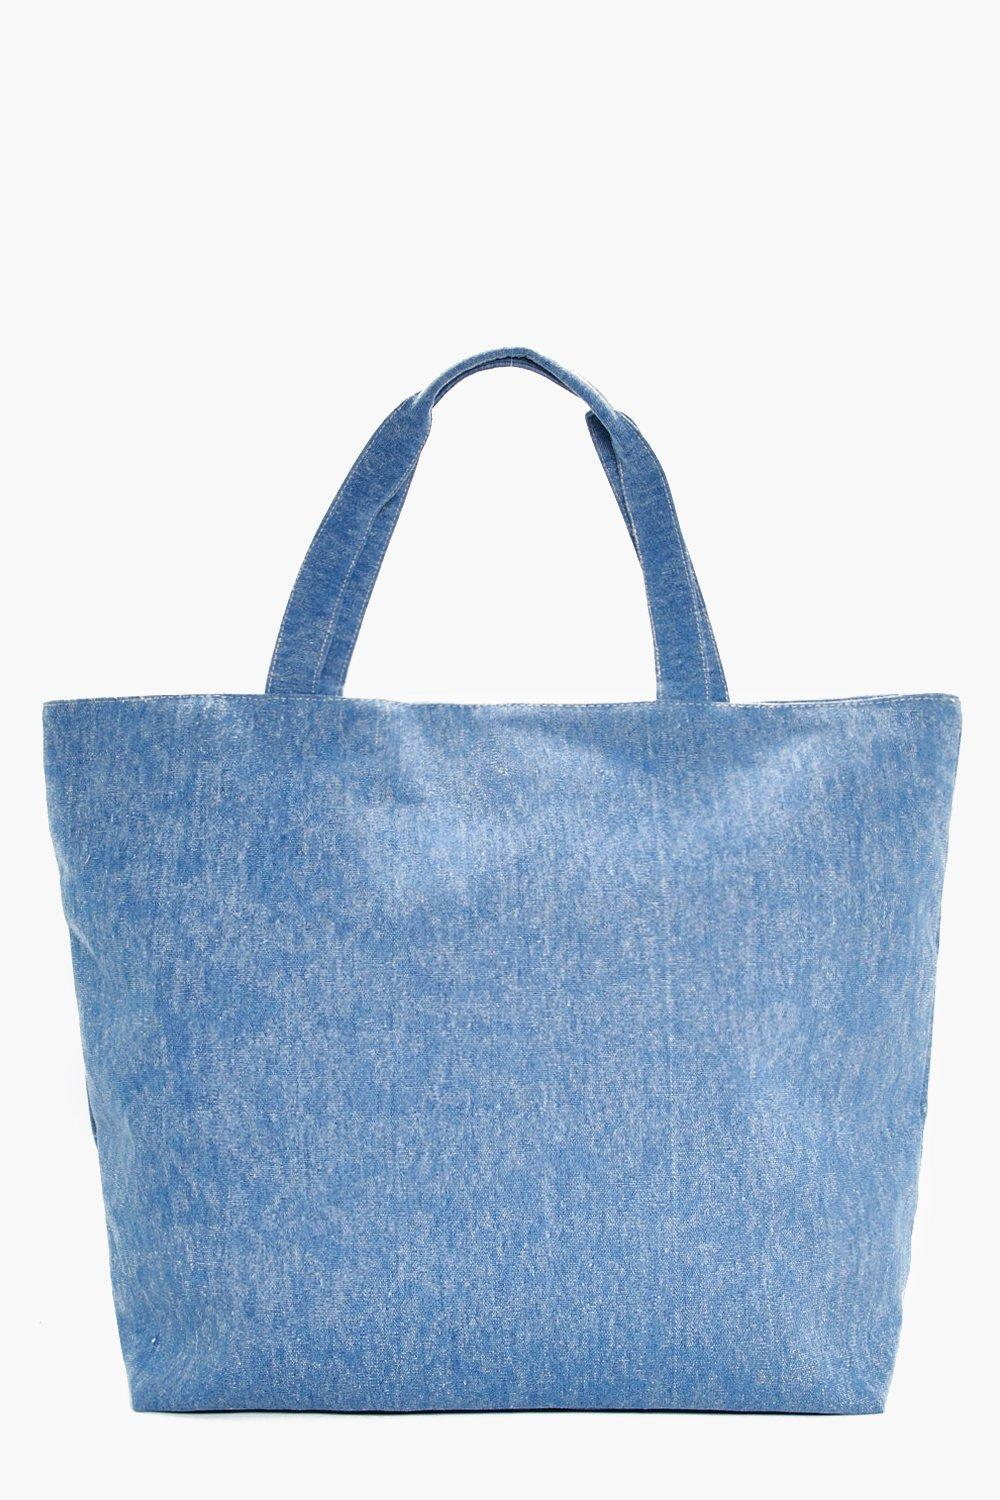 Mottled Denim Beach Bag - blue - Sofia Mottled Den